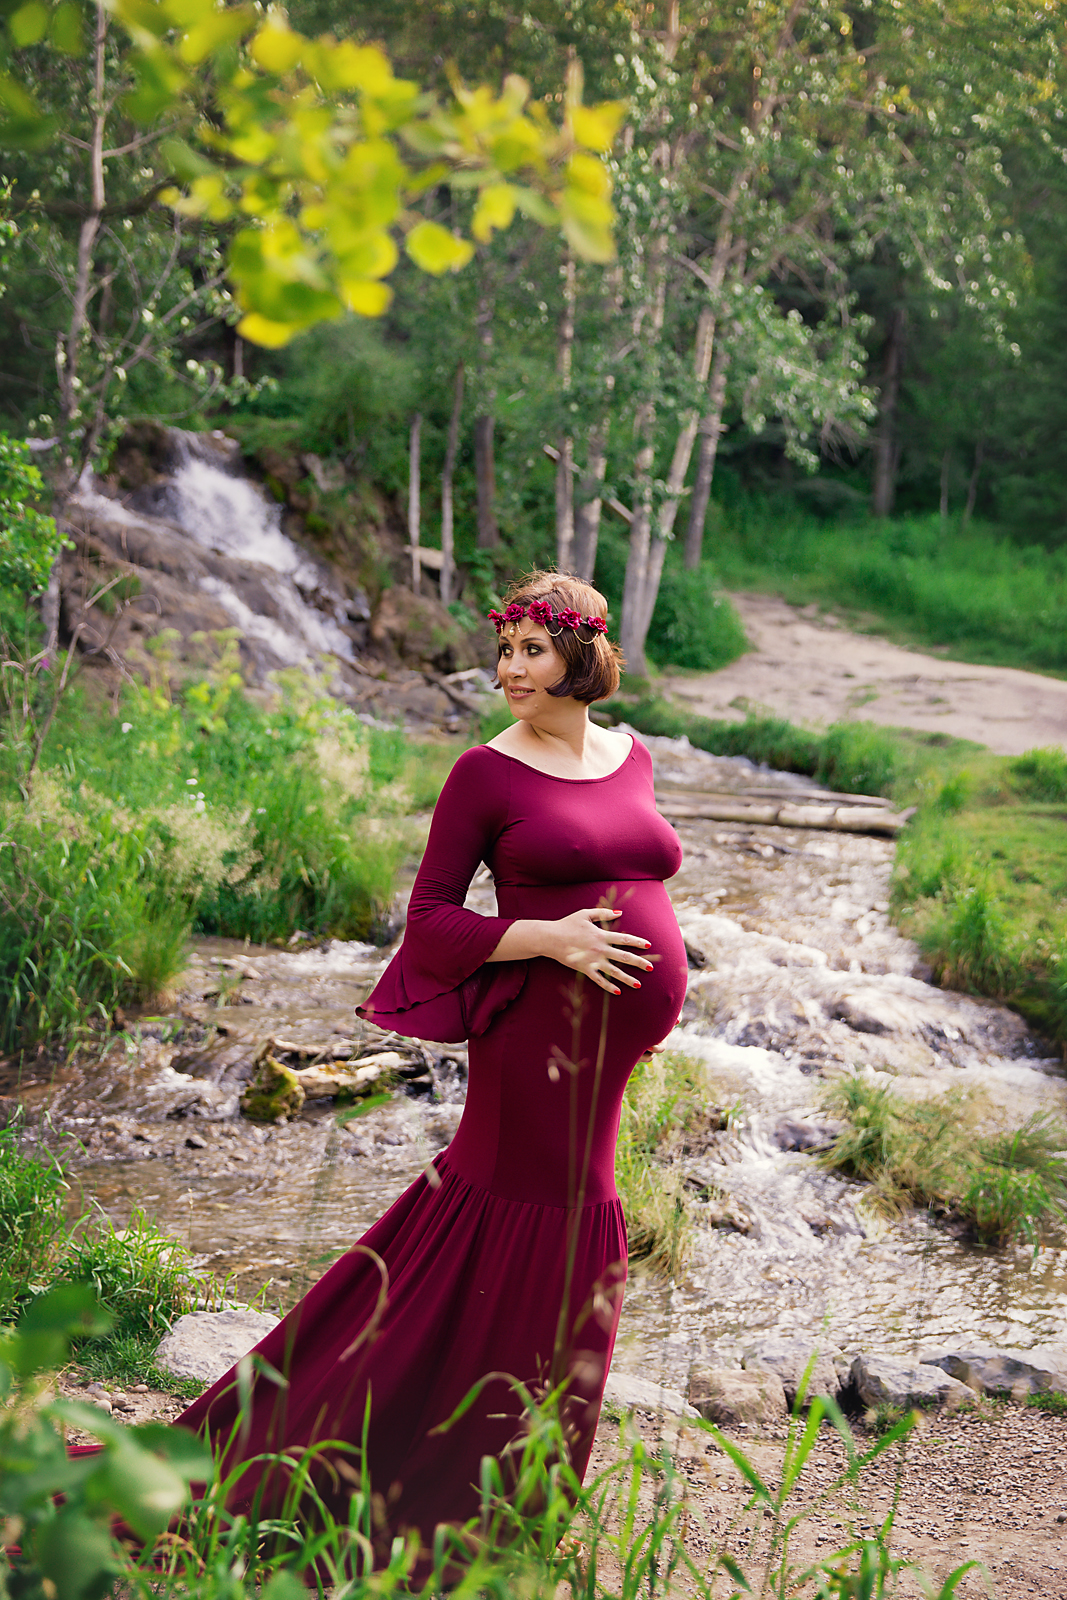 Mom-to-be is wearing a red gown and is looking playfully. Maternity photoshoot ideas. Calgary and Airdrie Maternity photographer